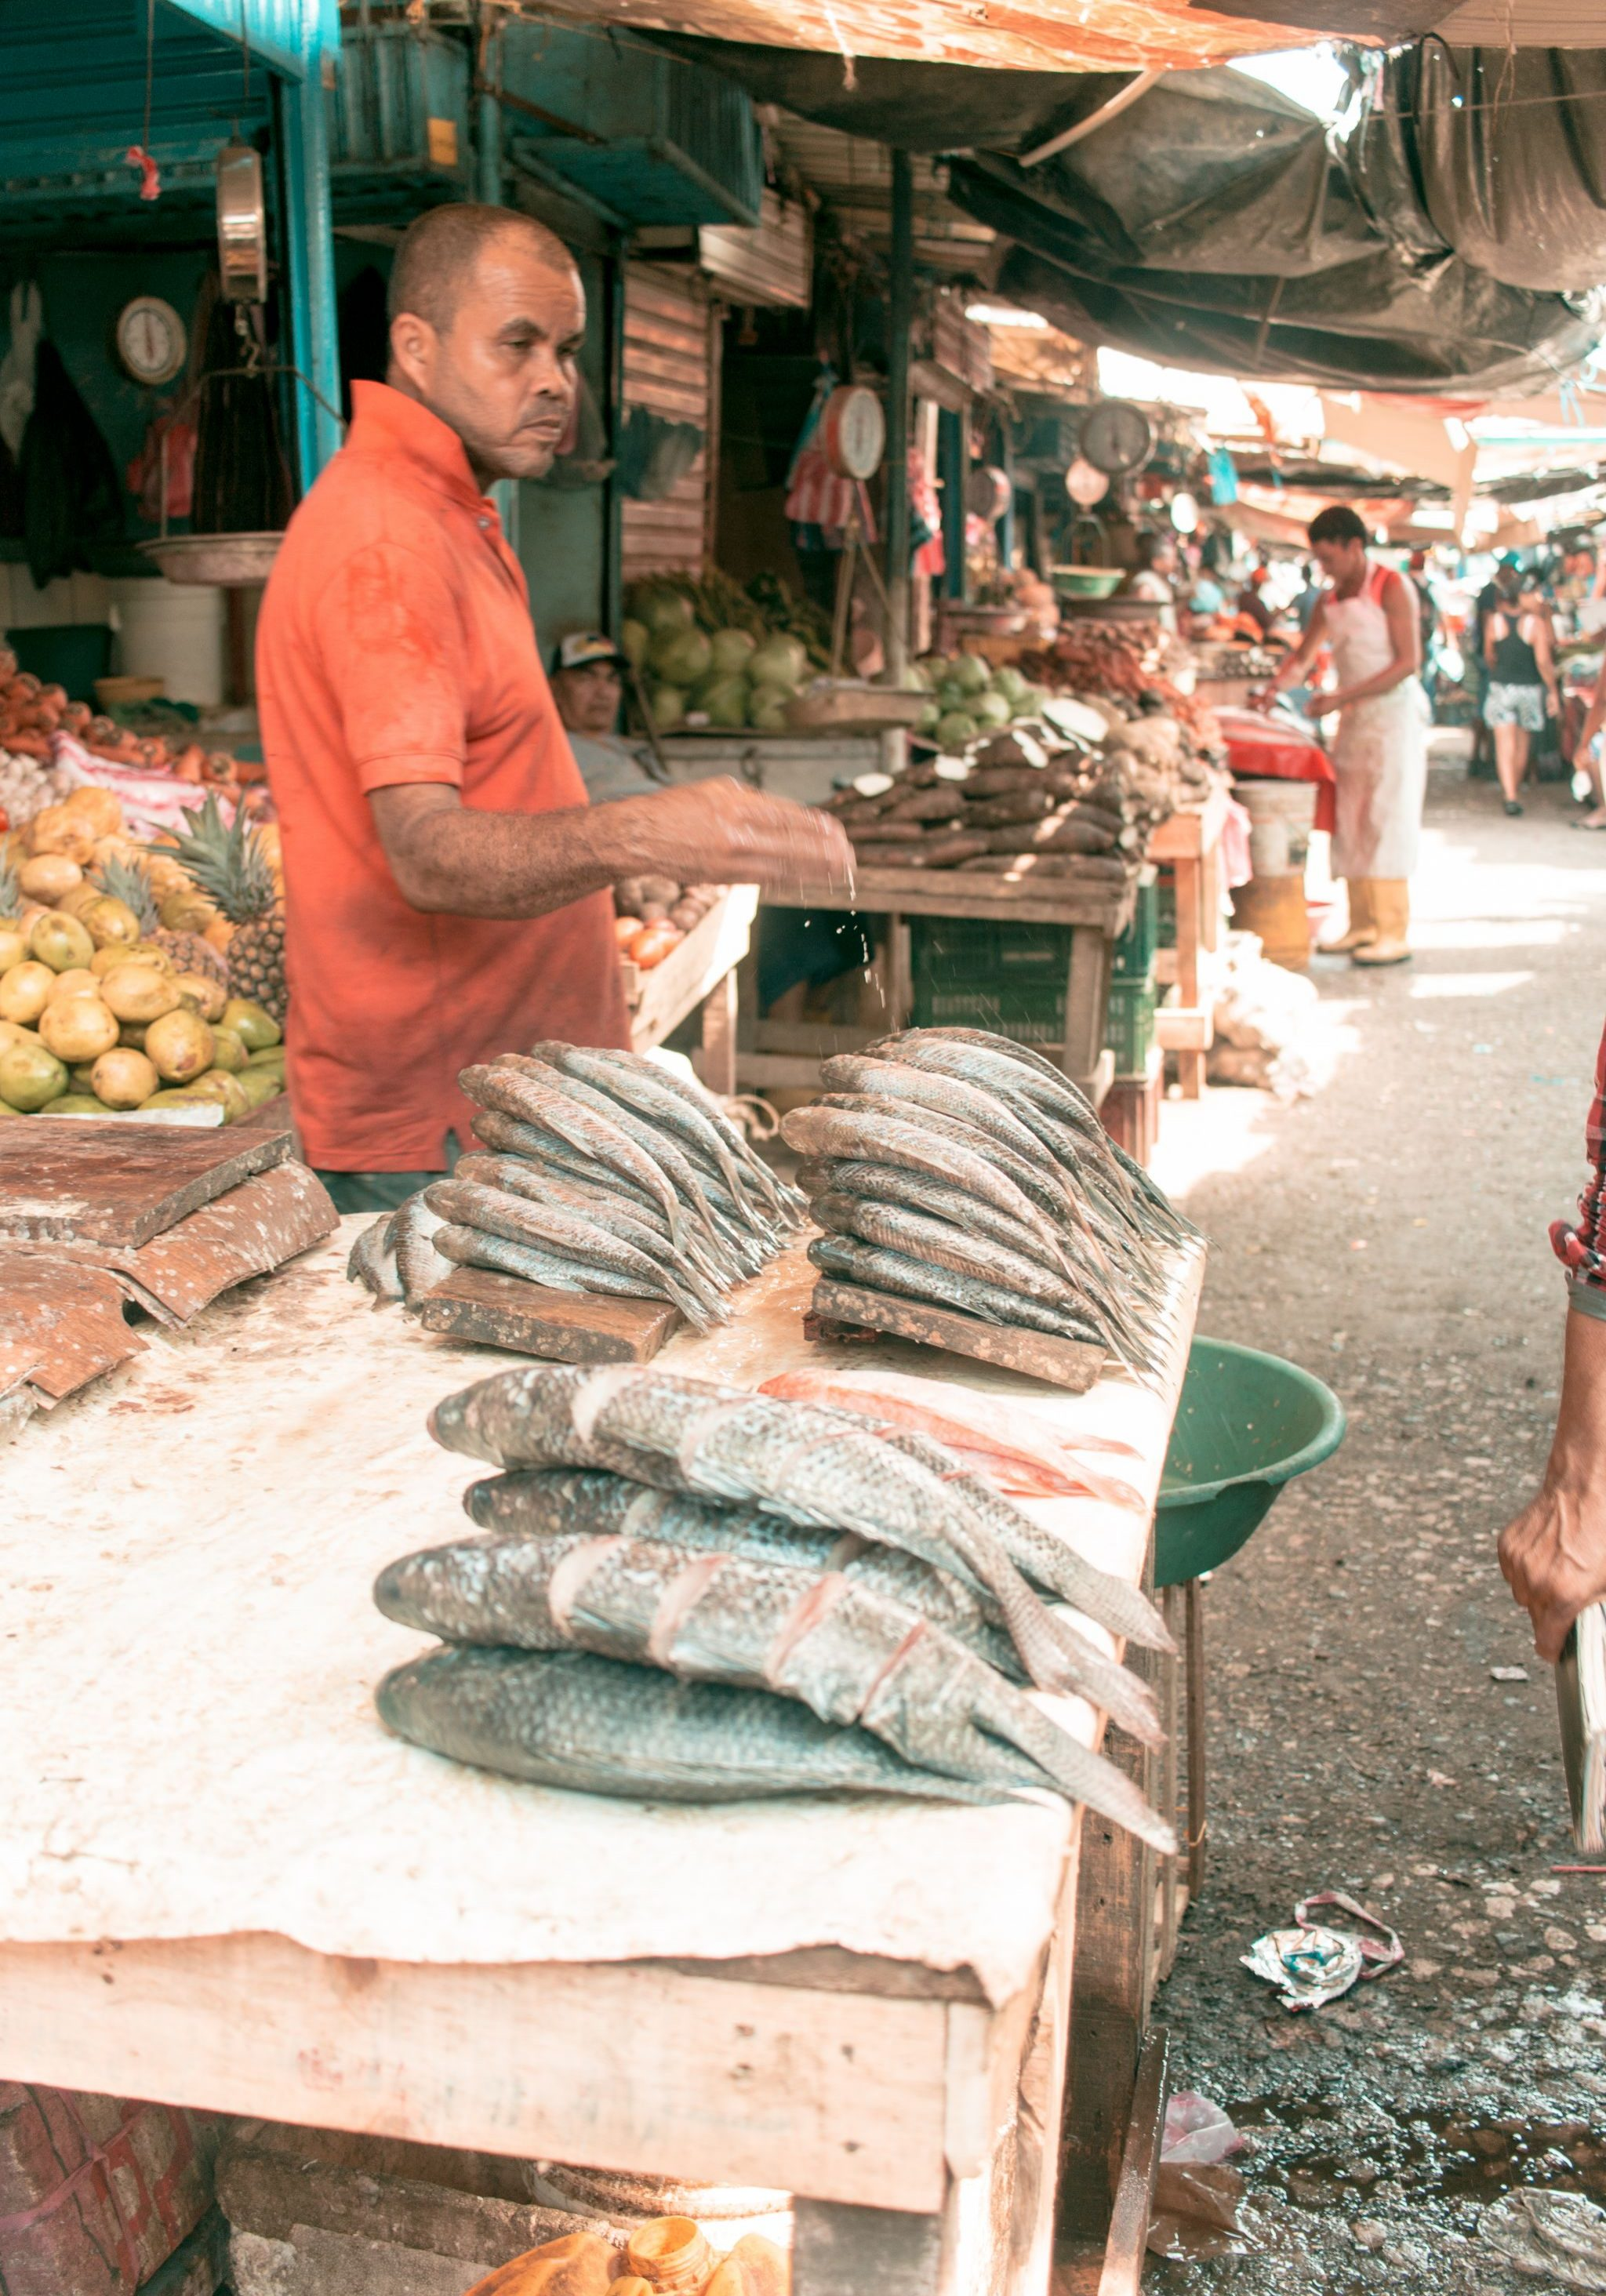 Cartagena Travel Guide Mercado Bazurto fish seller